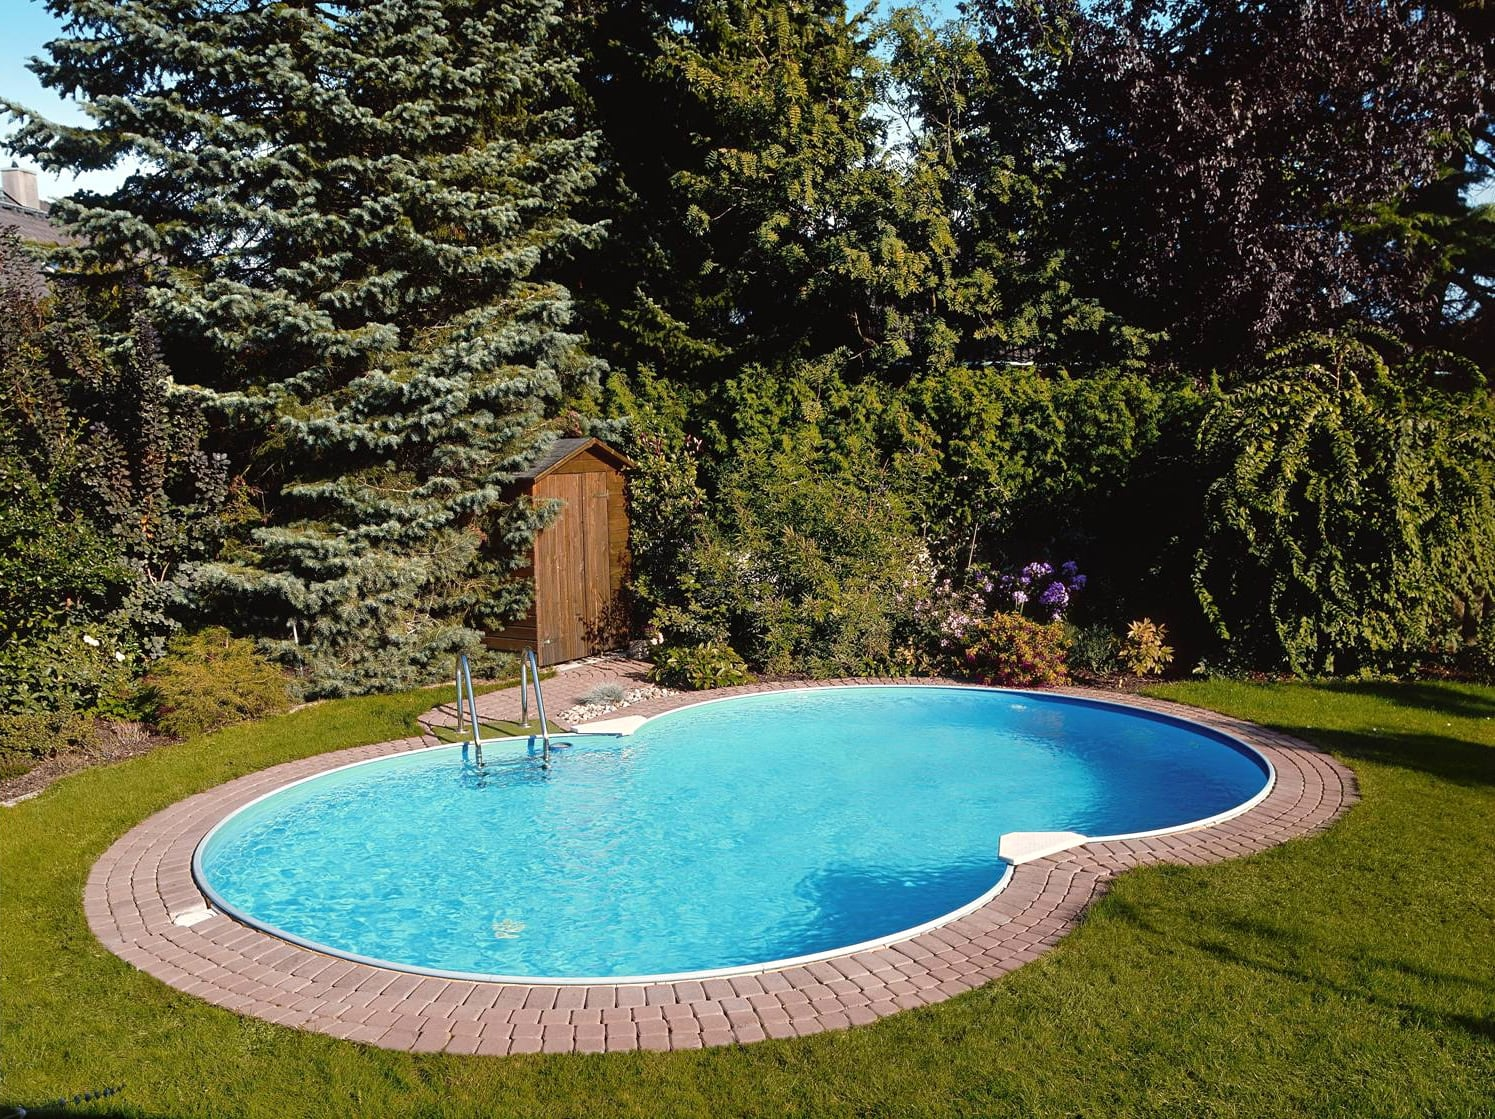 Piscineitalia kit piscina interrata in acciaio skyblue space 150 - Piscine piccole da giardino ...